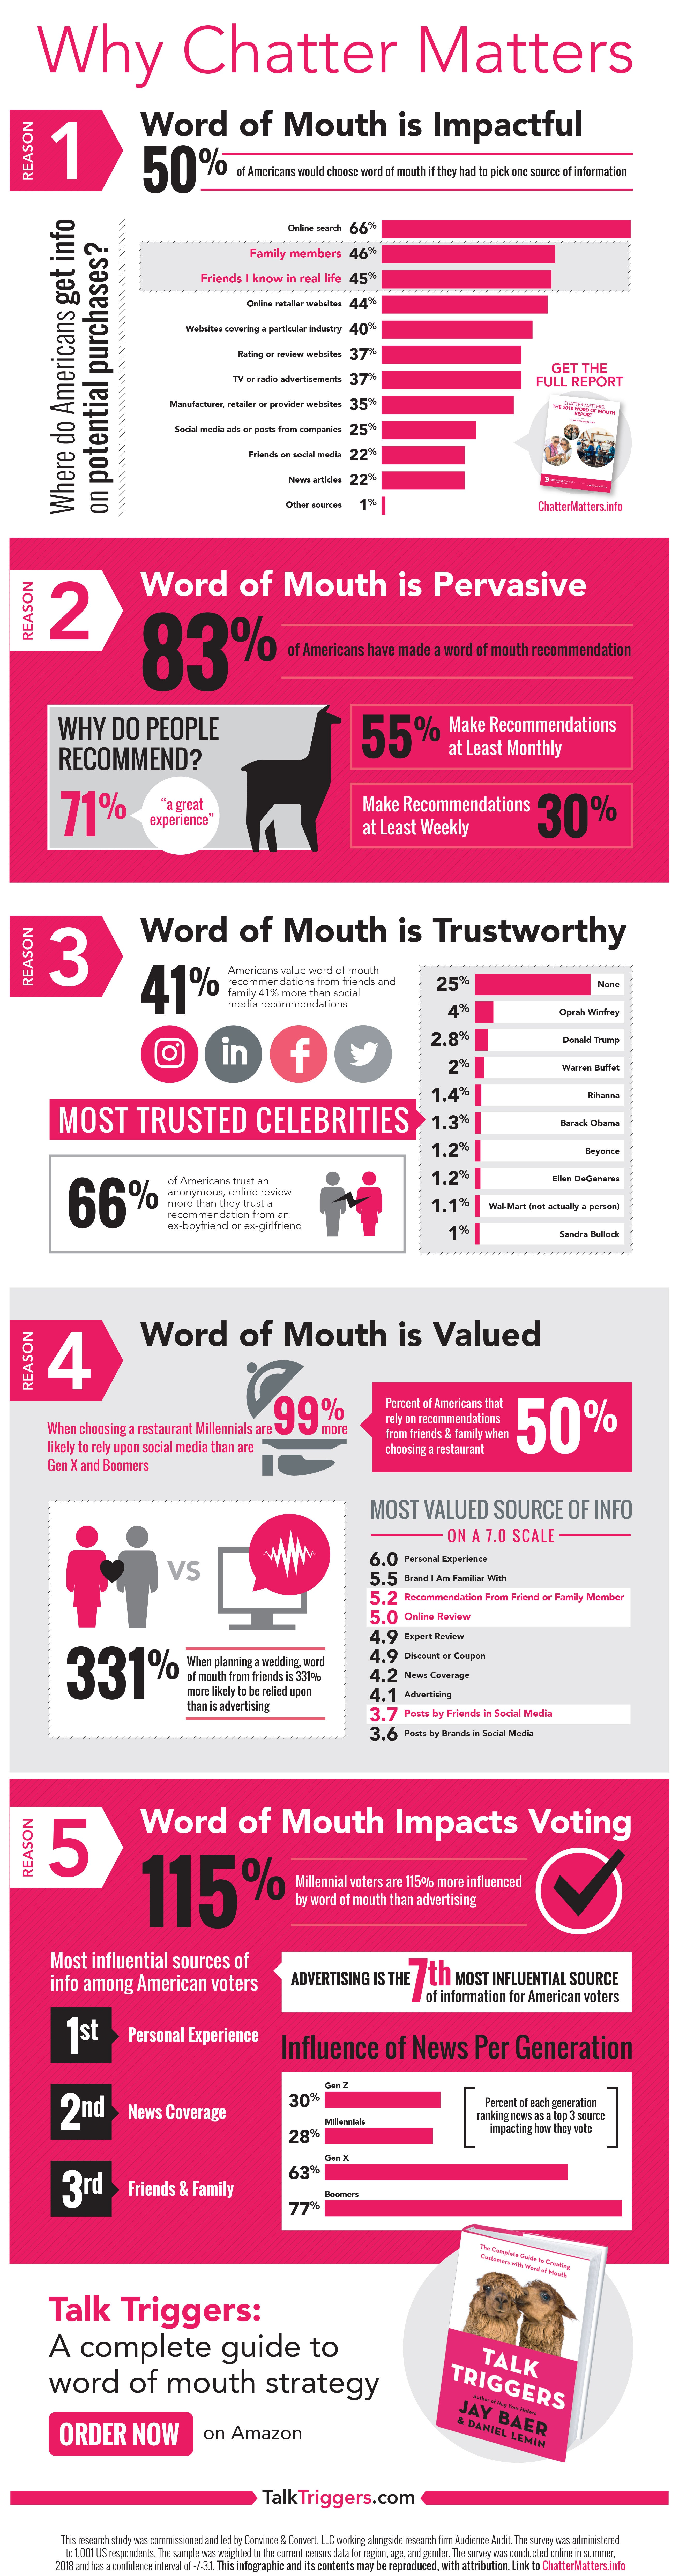 what makes a good blog - word of mouth matters